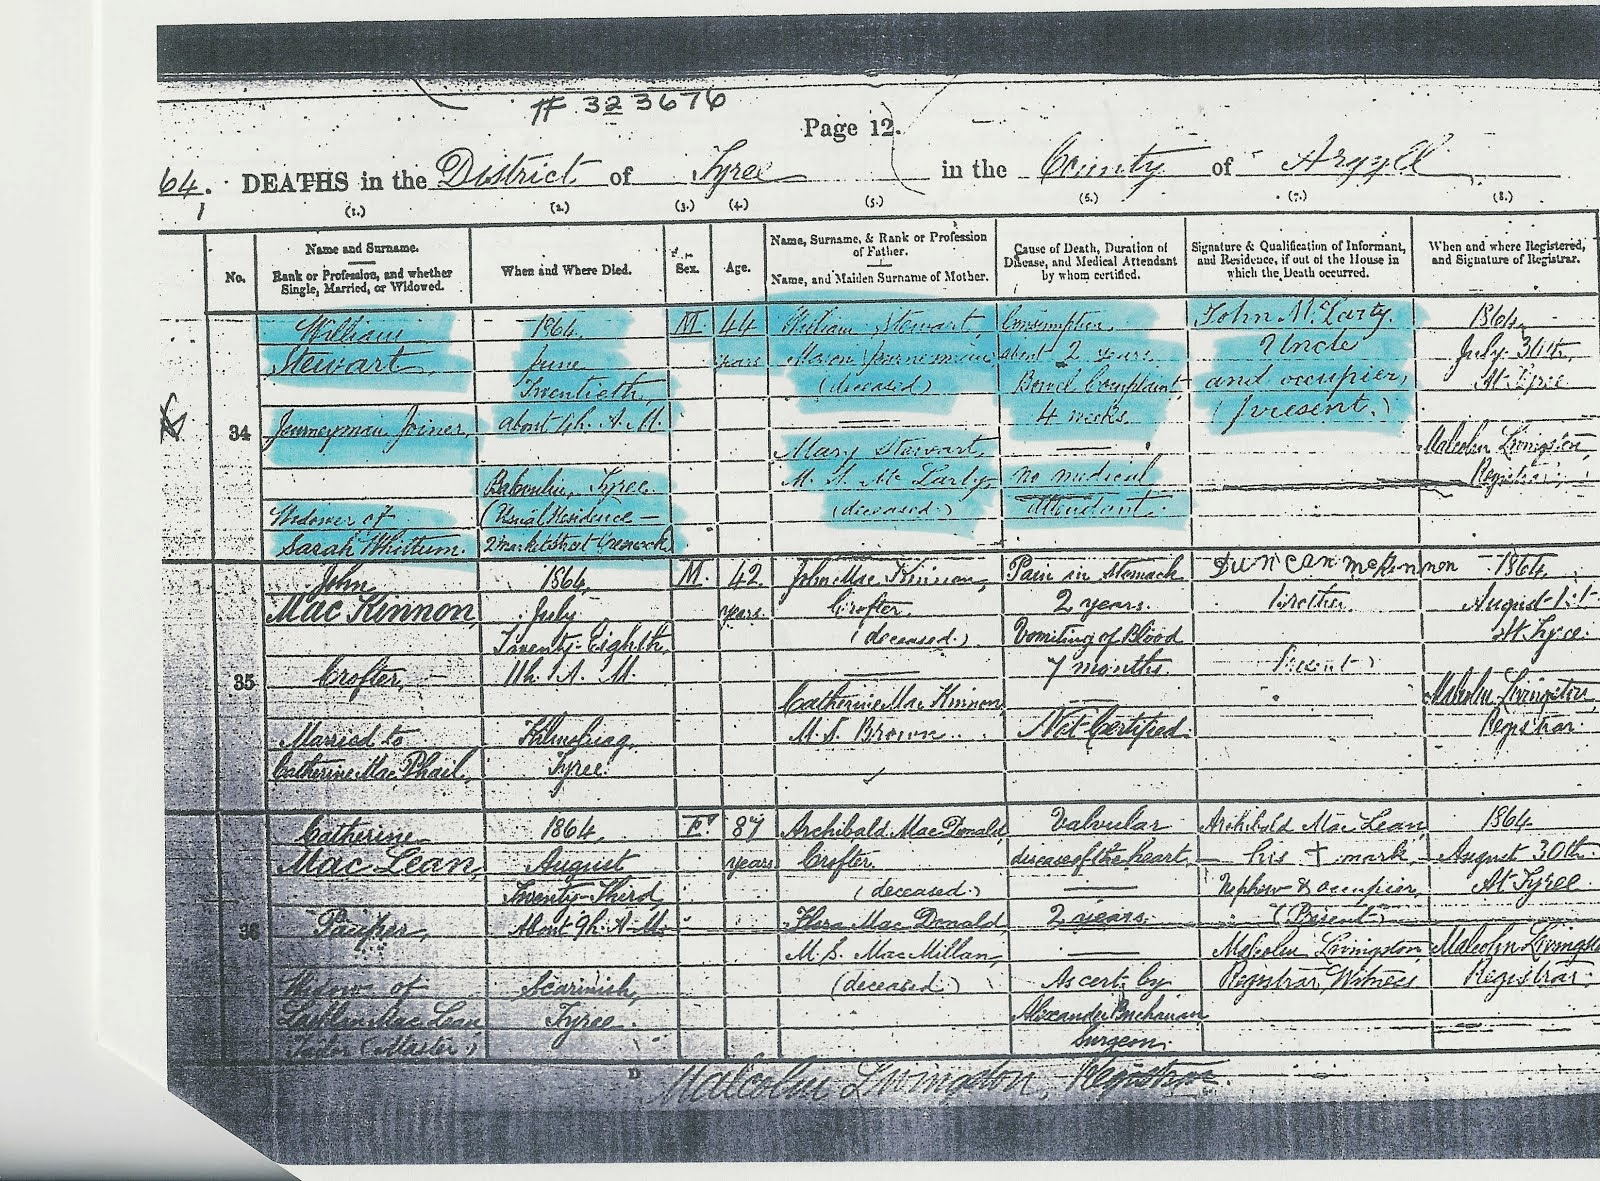 Death Certificate of Mary McLarty's son William